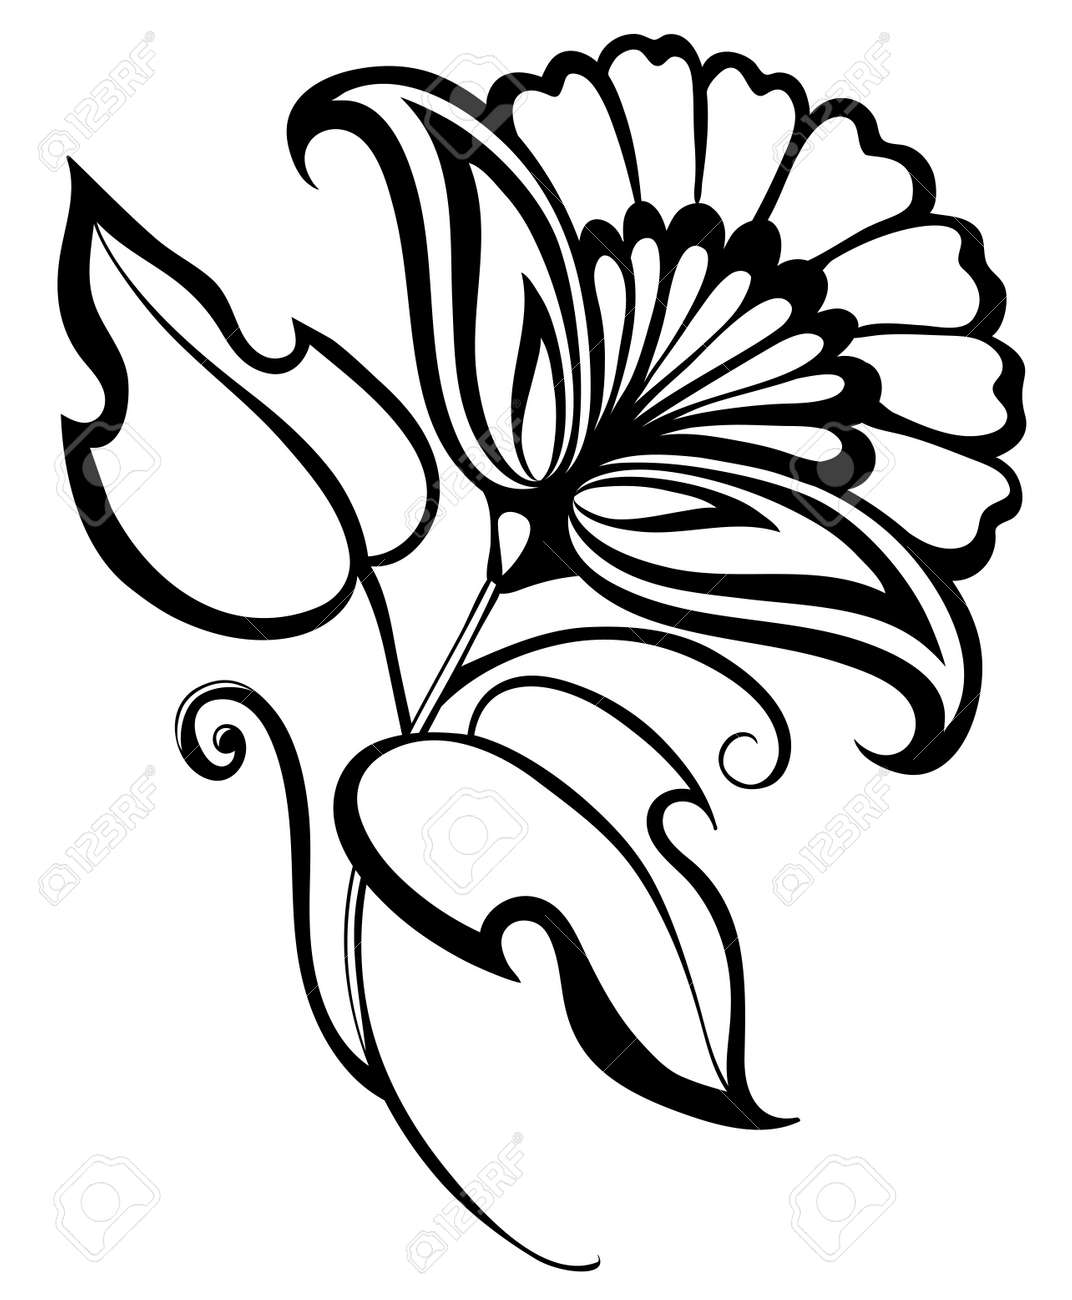 beautiful black and white flower hand drawing floral design